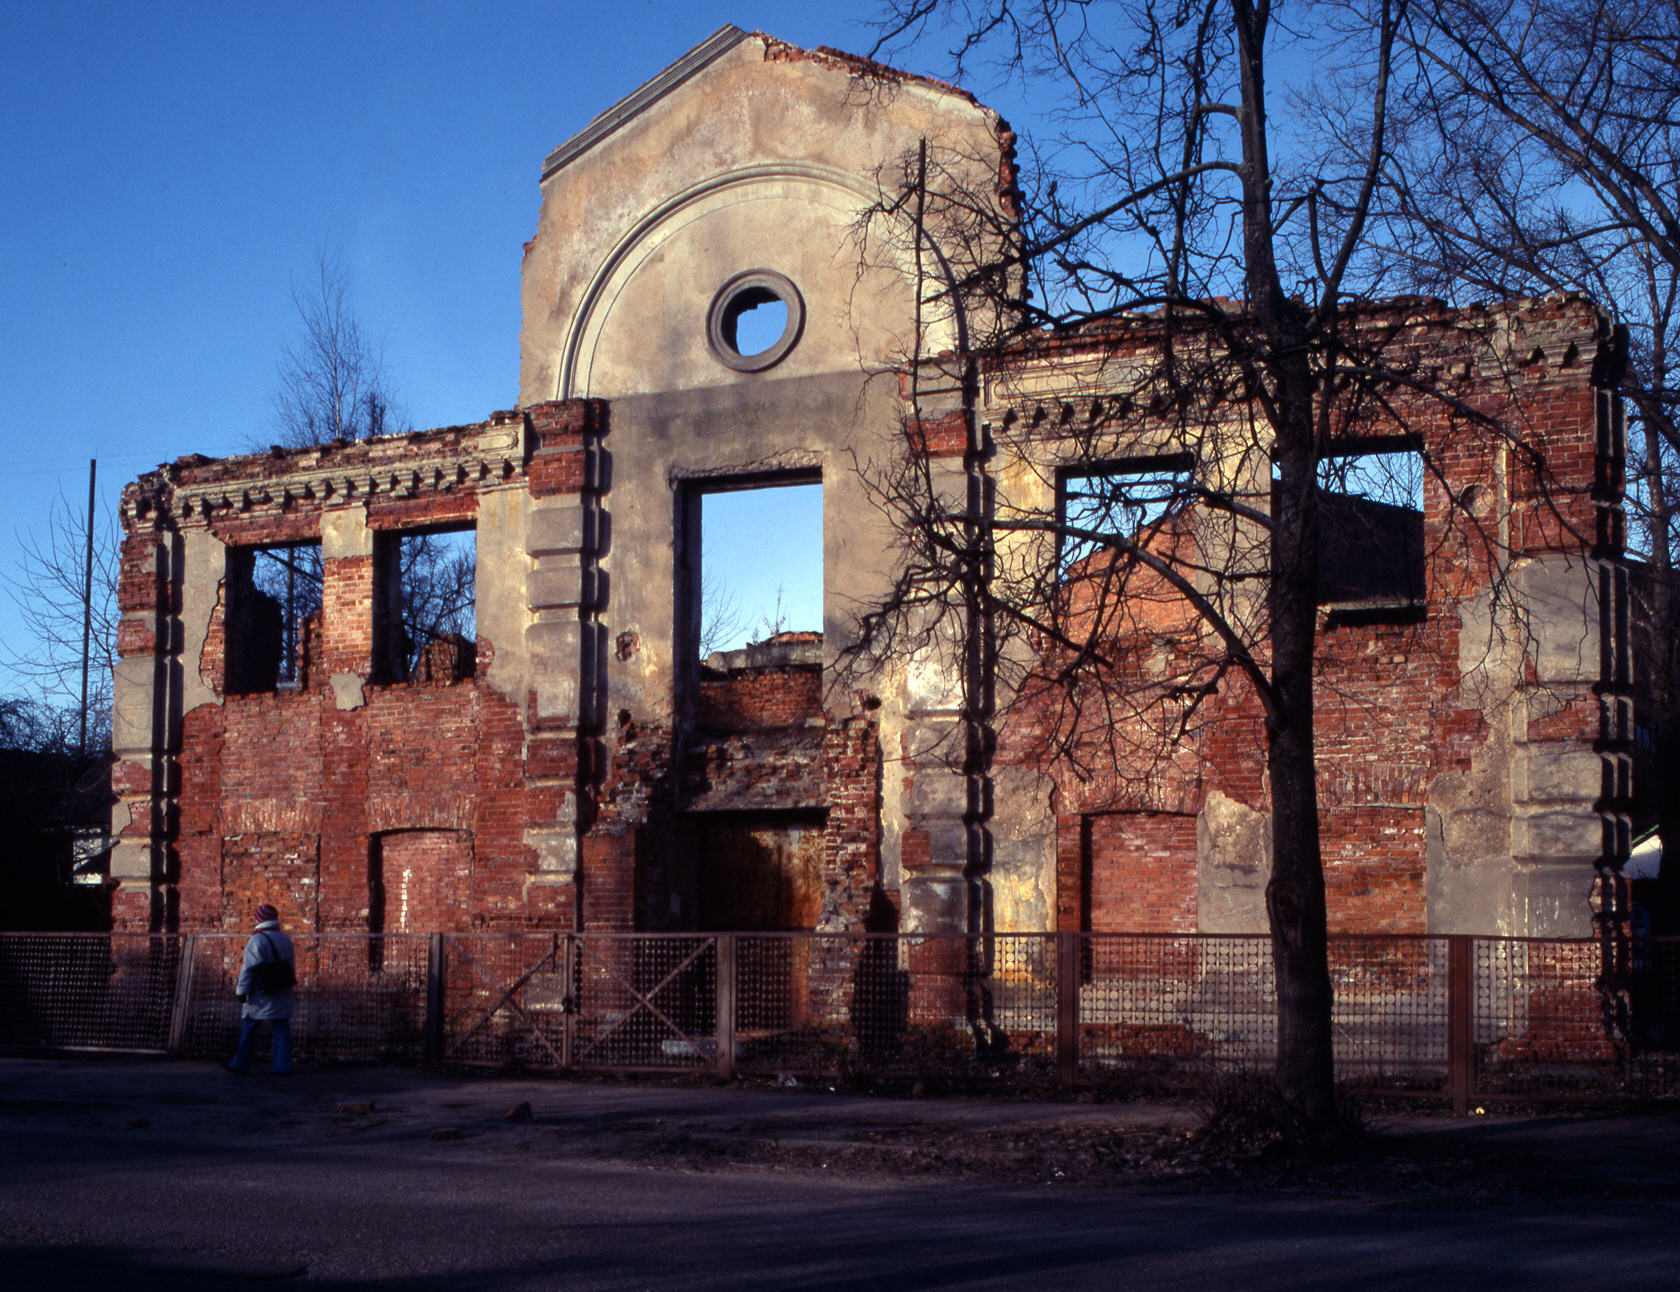 A shell of a synagogue damaged during the Holocaust still stands in Vitebsk, Belarus.